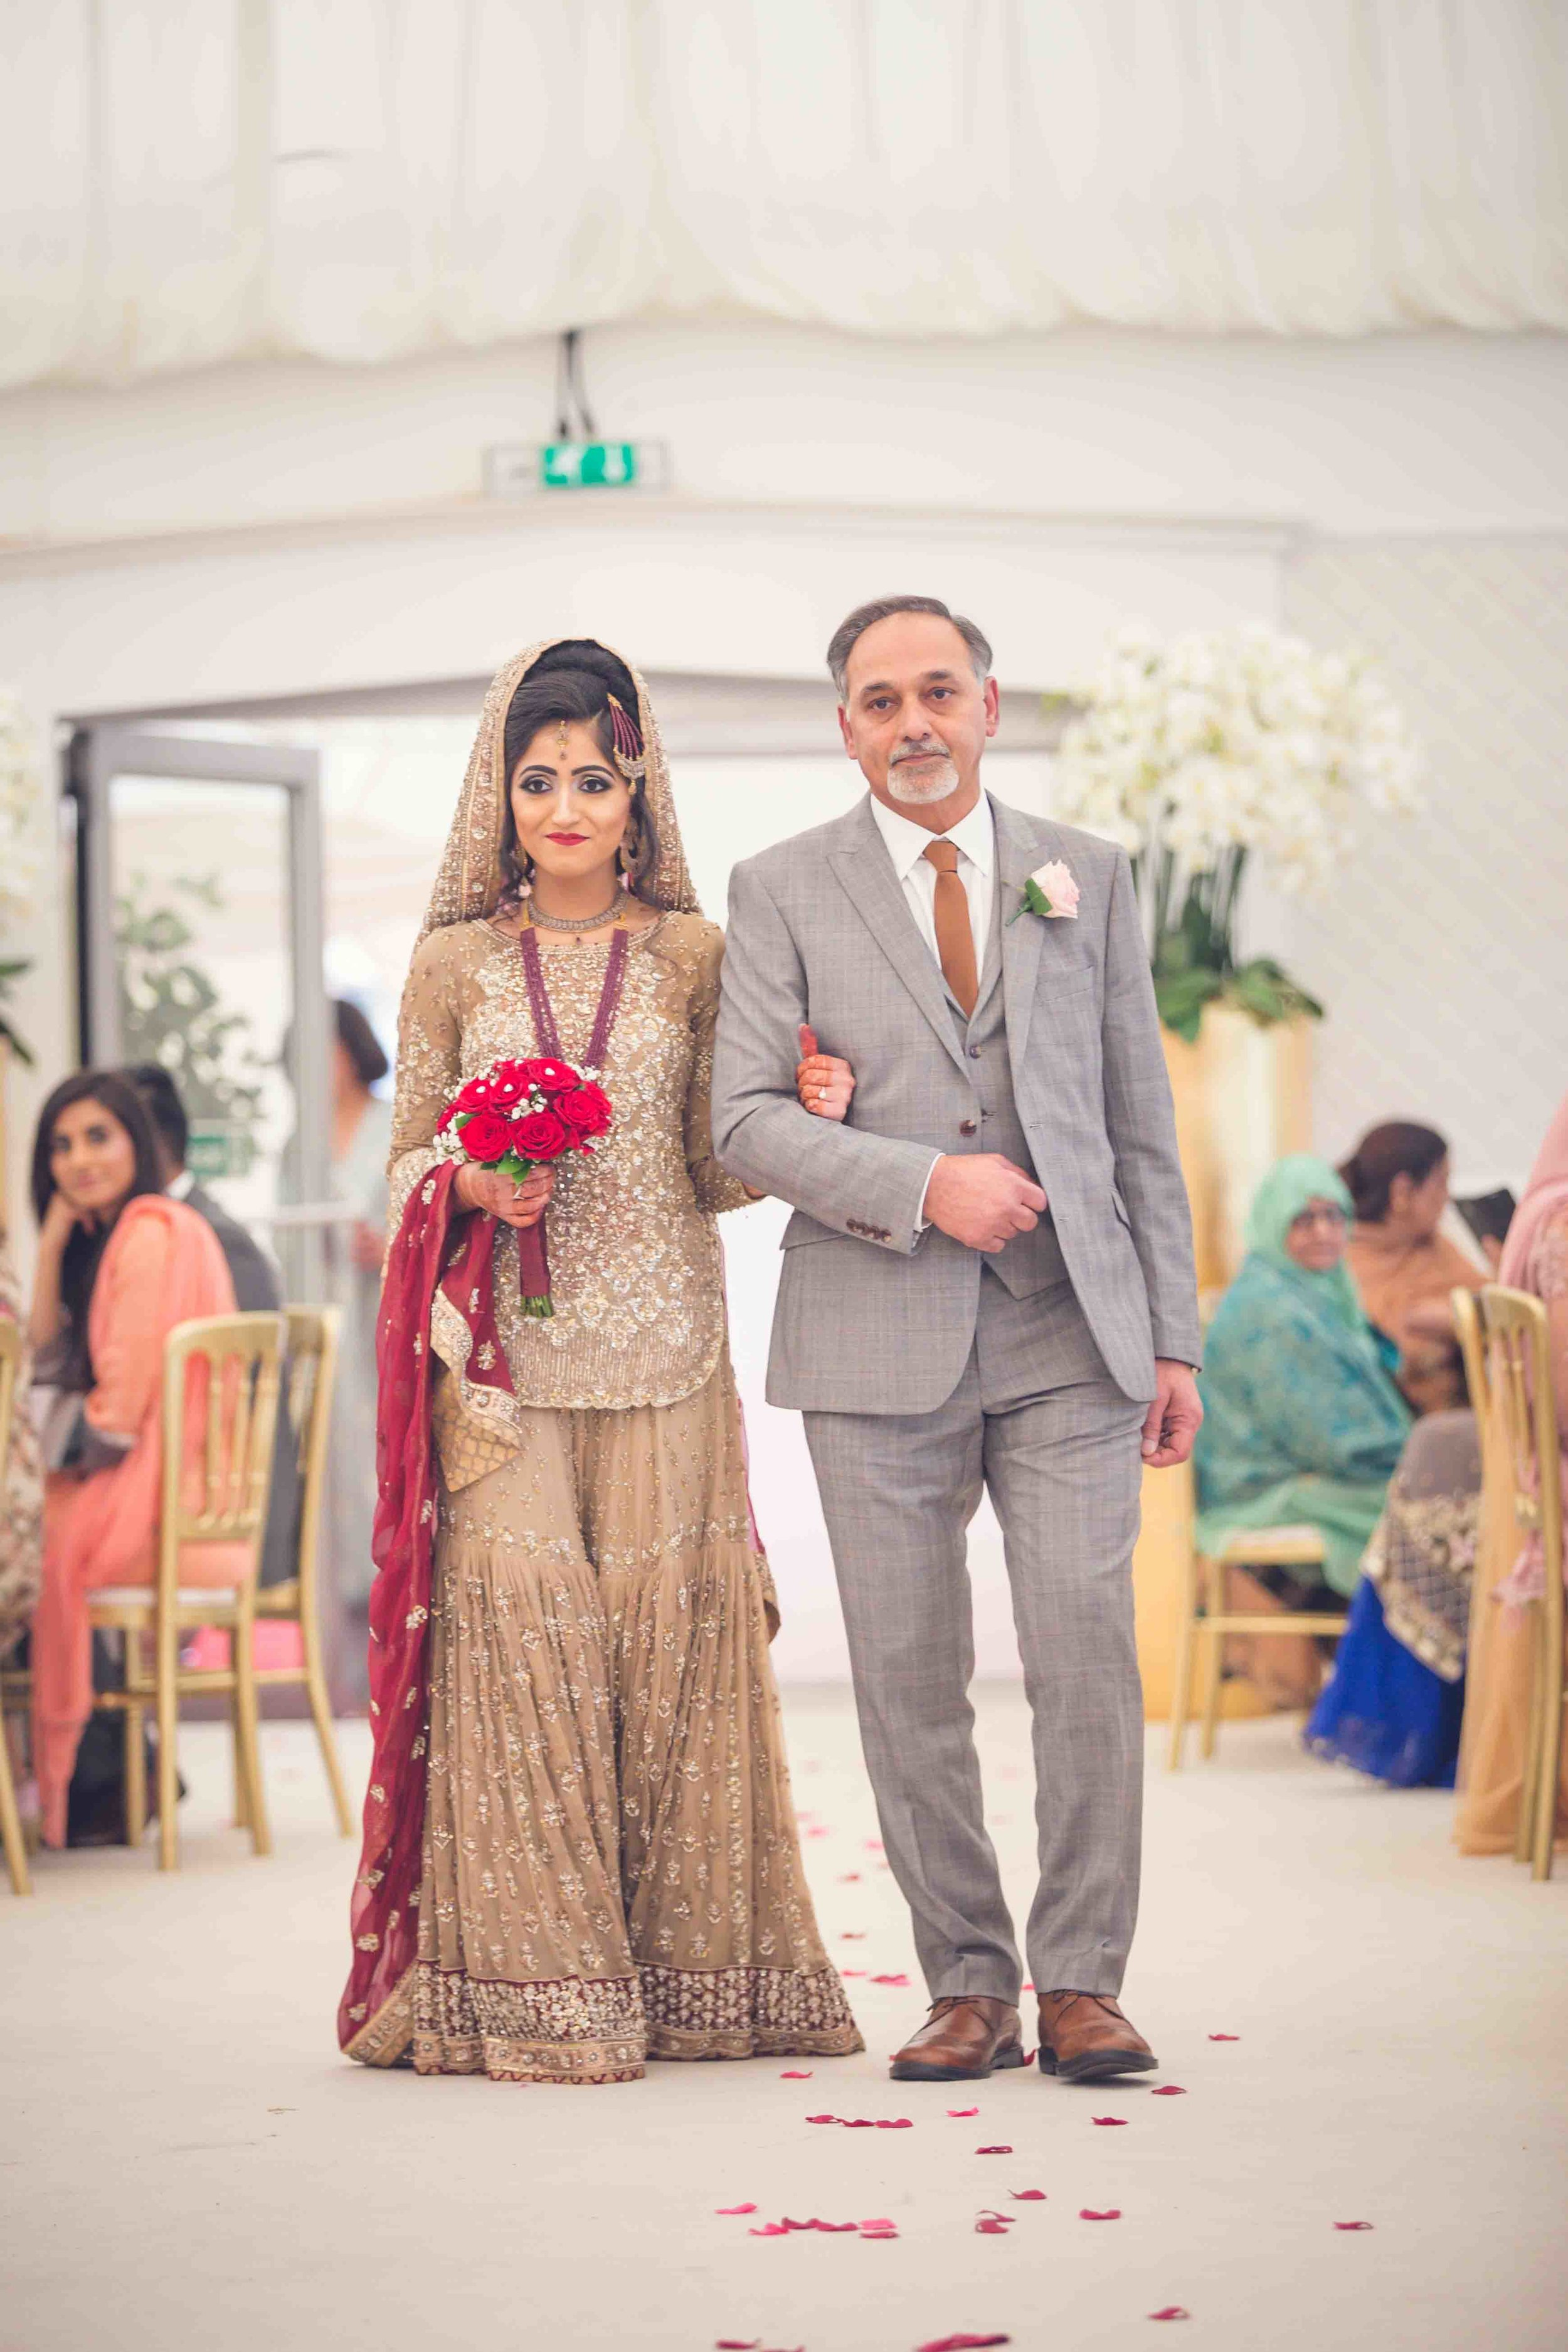 Opu Sultan Photography Asian wedding photography scotland edinburgh glasgow manchester birmingham london-247.jpg